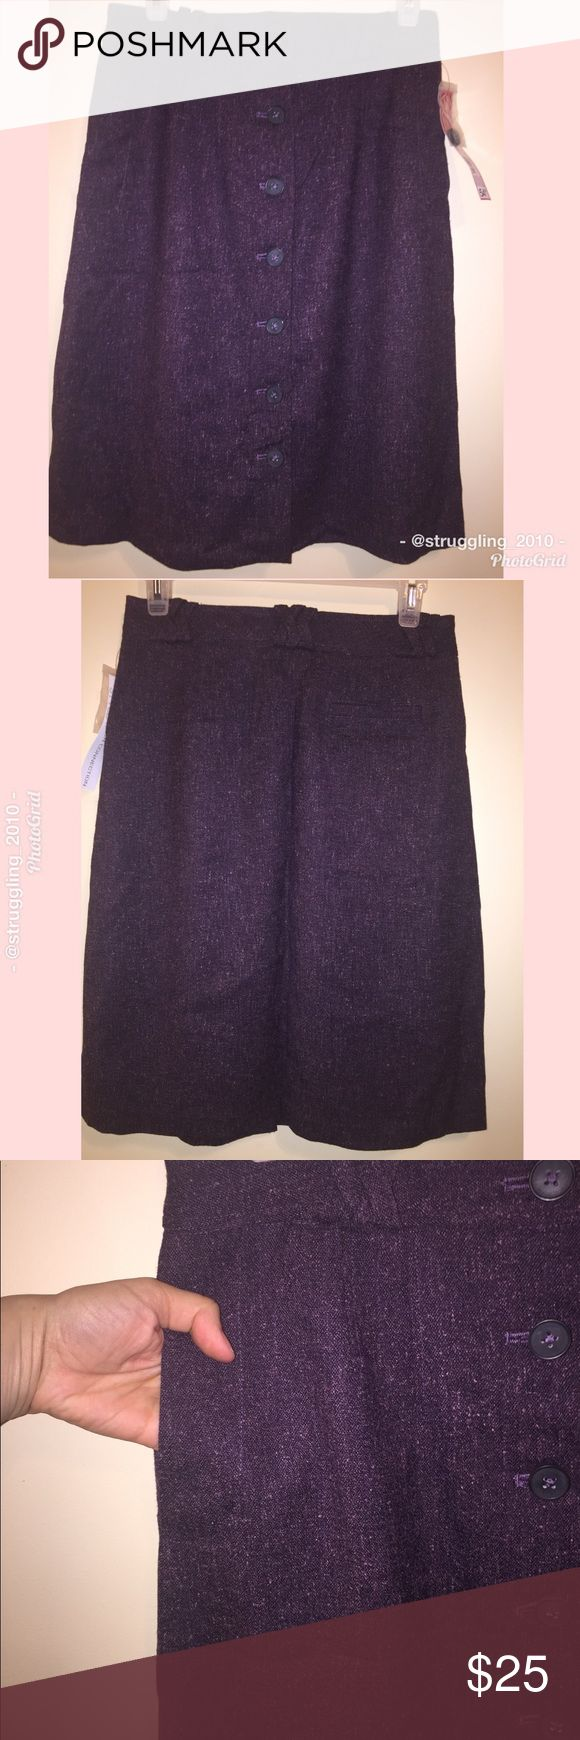 """🆕NWT French Connection Purple Skirt Brand new with tags & extra button, French Connection UK Style brand purple skirt tweed style w/ front button down style & crisscross belt loops. Color on label says plumb combo. Has side pockets. Back pocket functional but still stitched. Size 4. Approximate Measurements: waist 28"""" length 23"""". Accepting reasonable offers. Please ask any questions. No trades. French Connection Skirts Midi"""